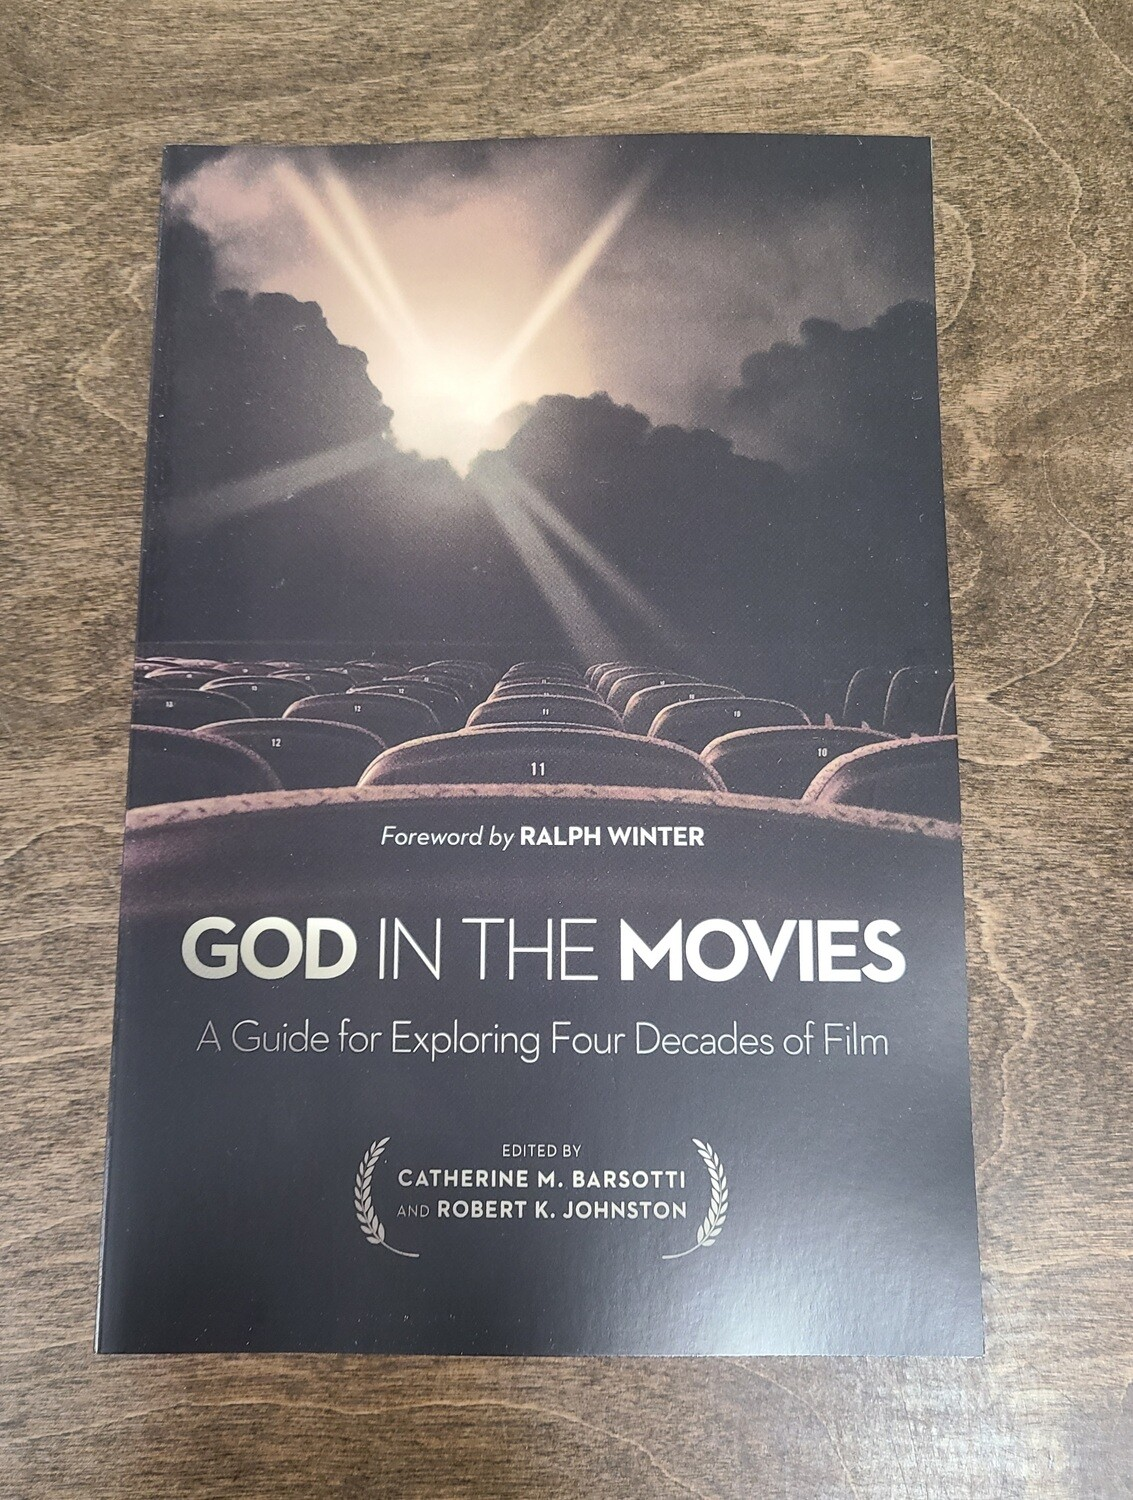 God in the Movies: A Guide for Exploring Four Decades of Film by Catherine M. Barsotti and Robert K. Johnston